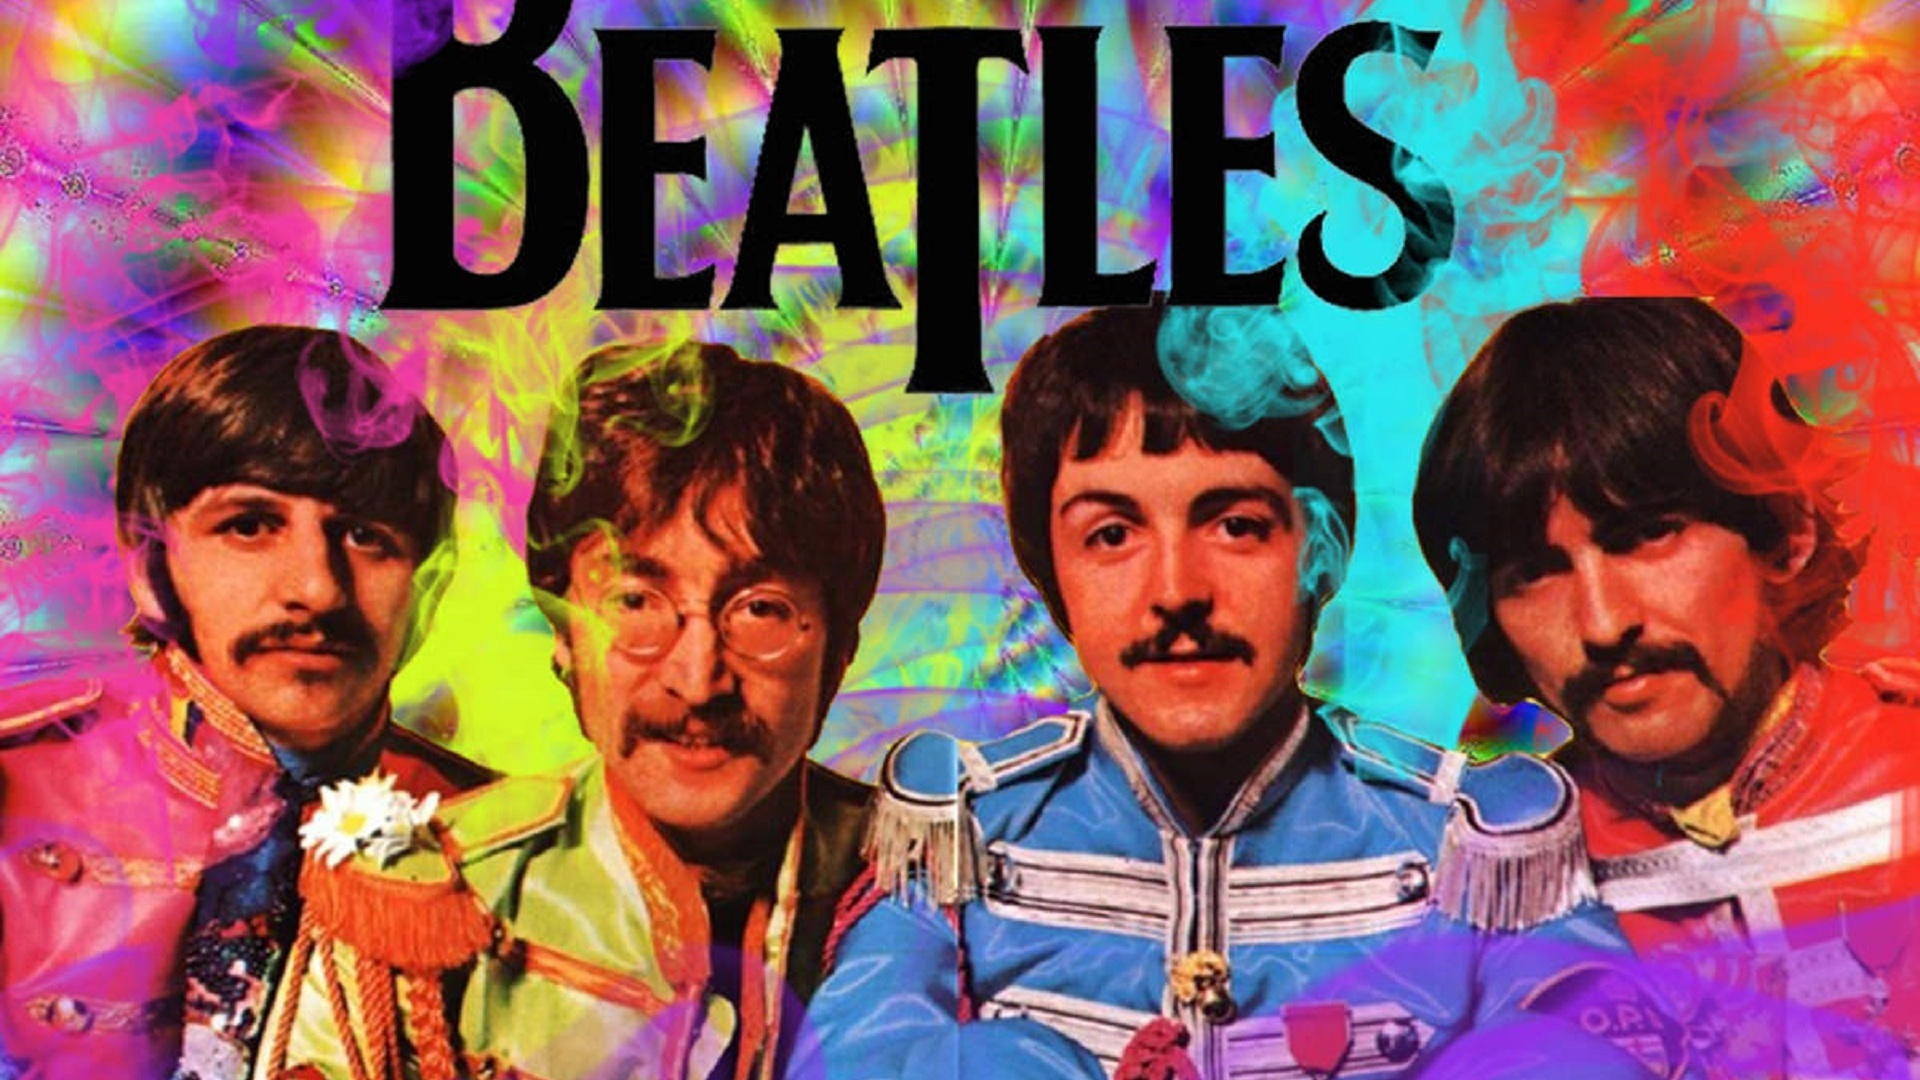 The beatles background